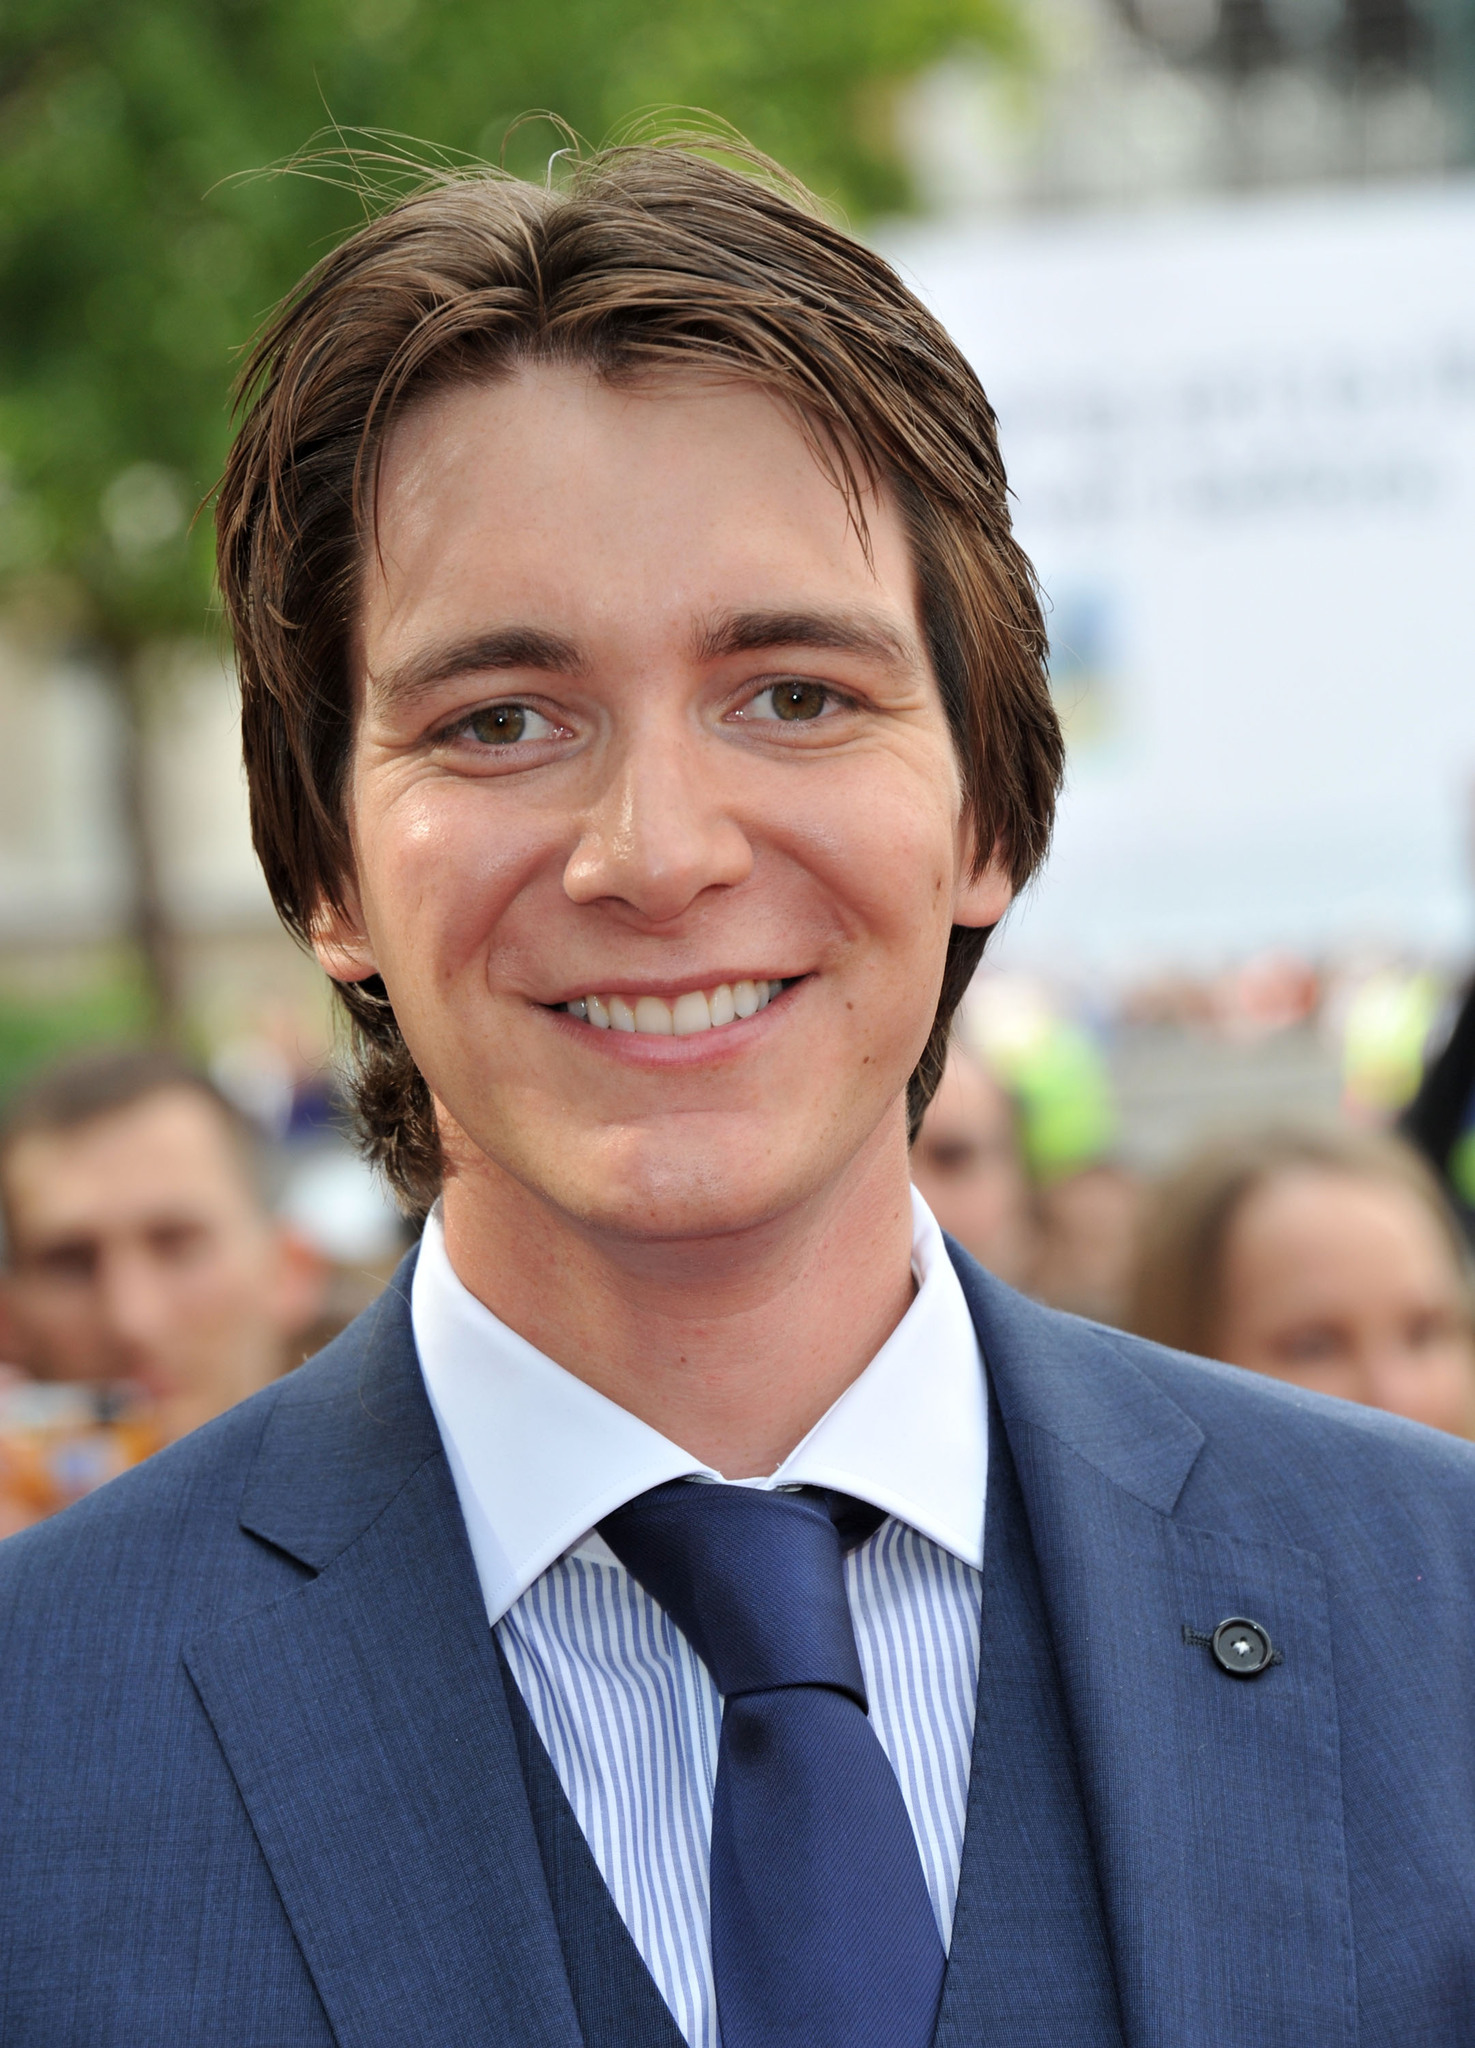 James Phelps (born 1986)